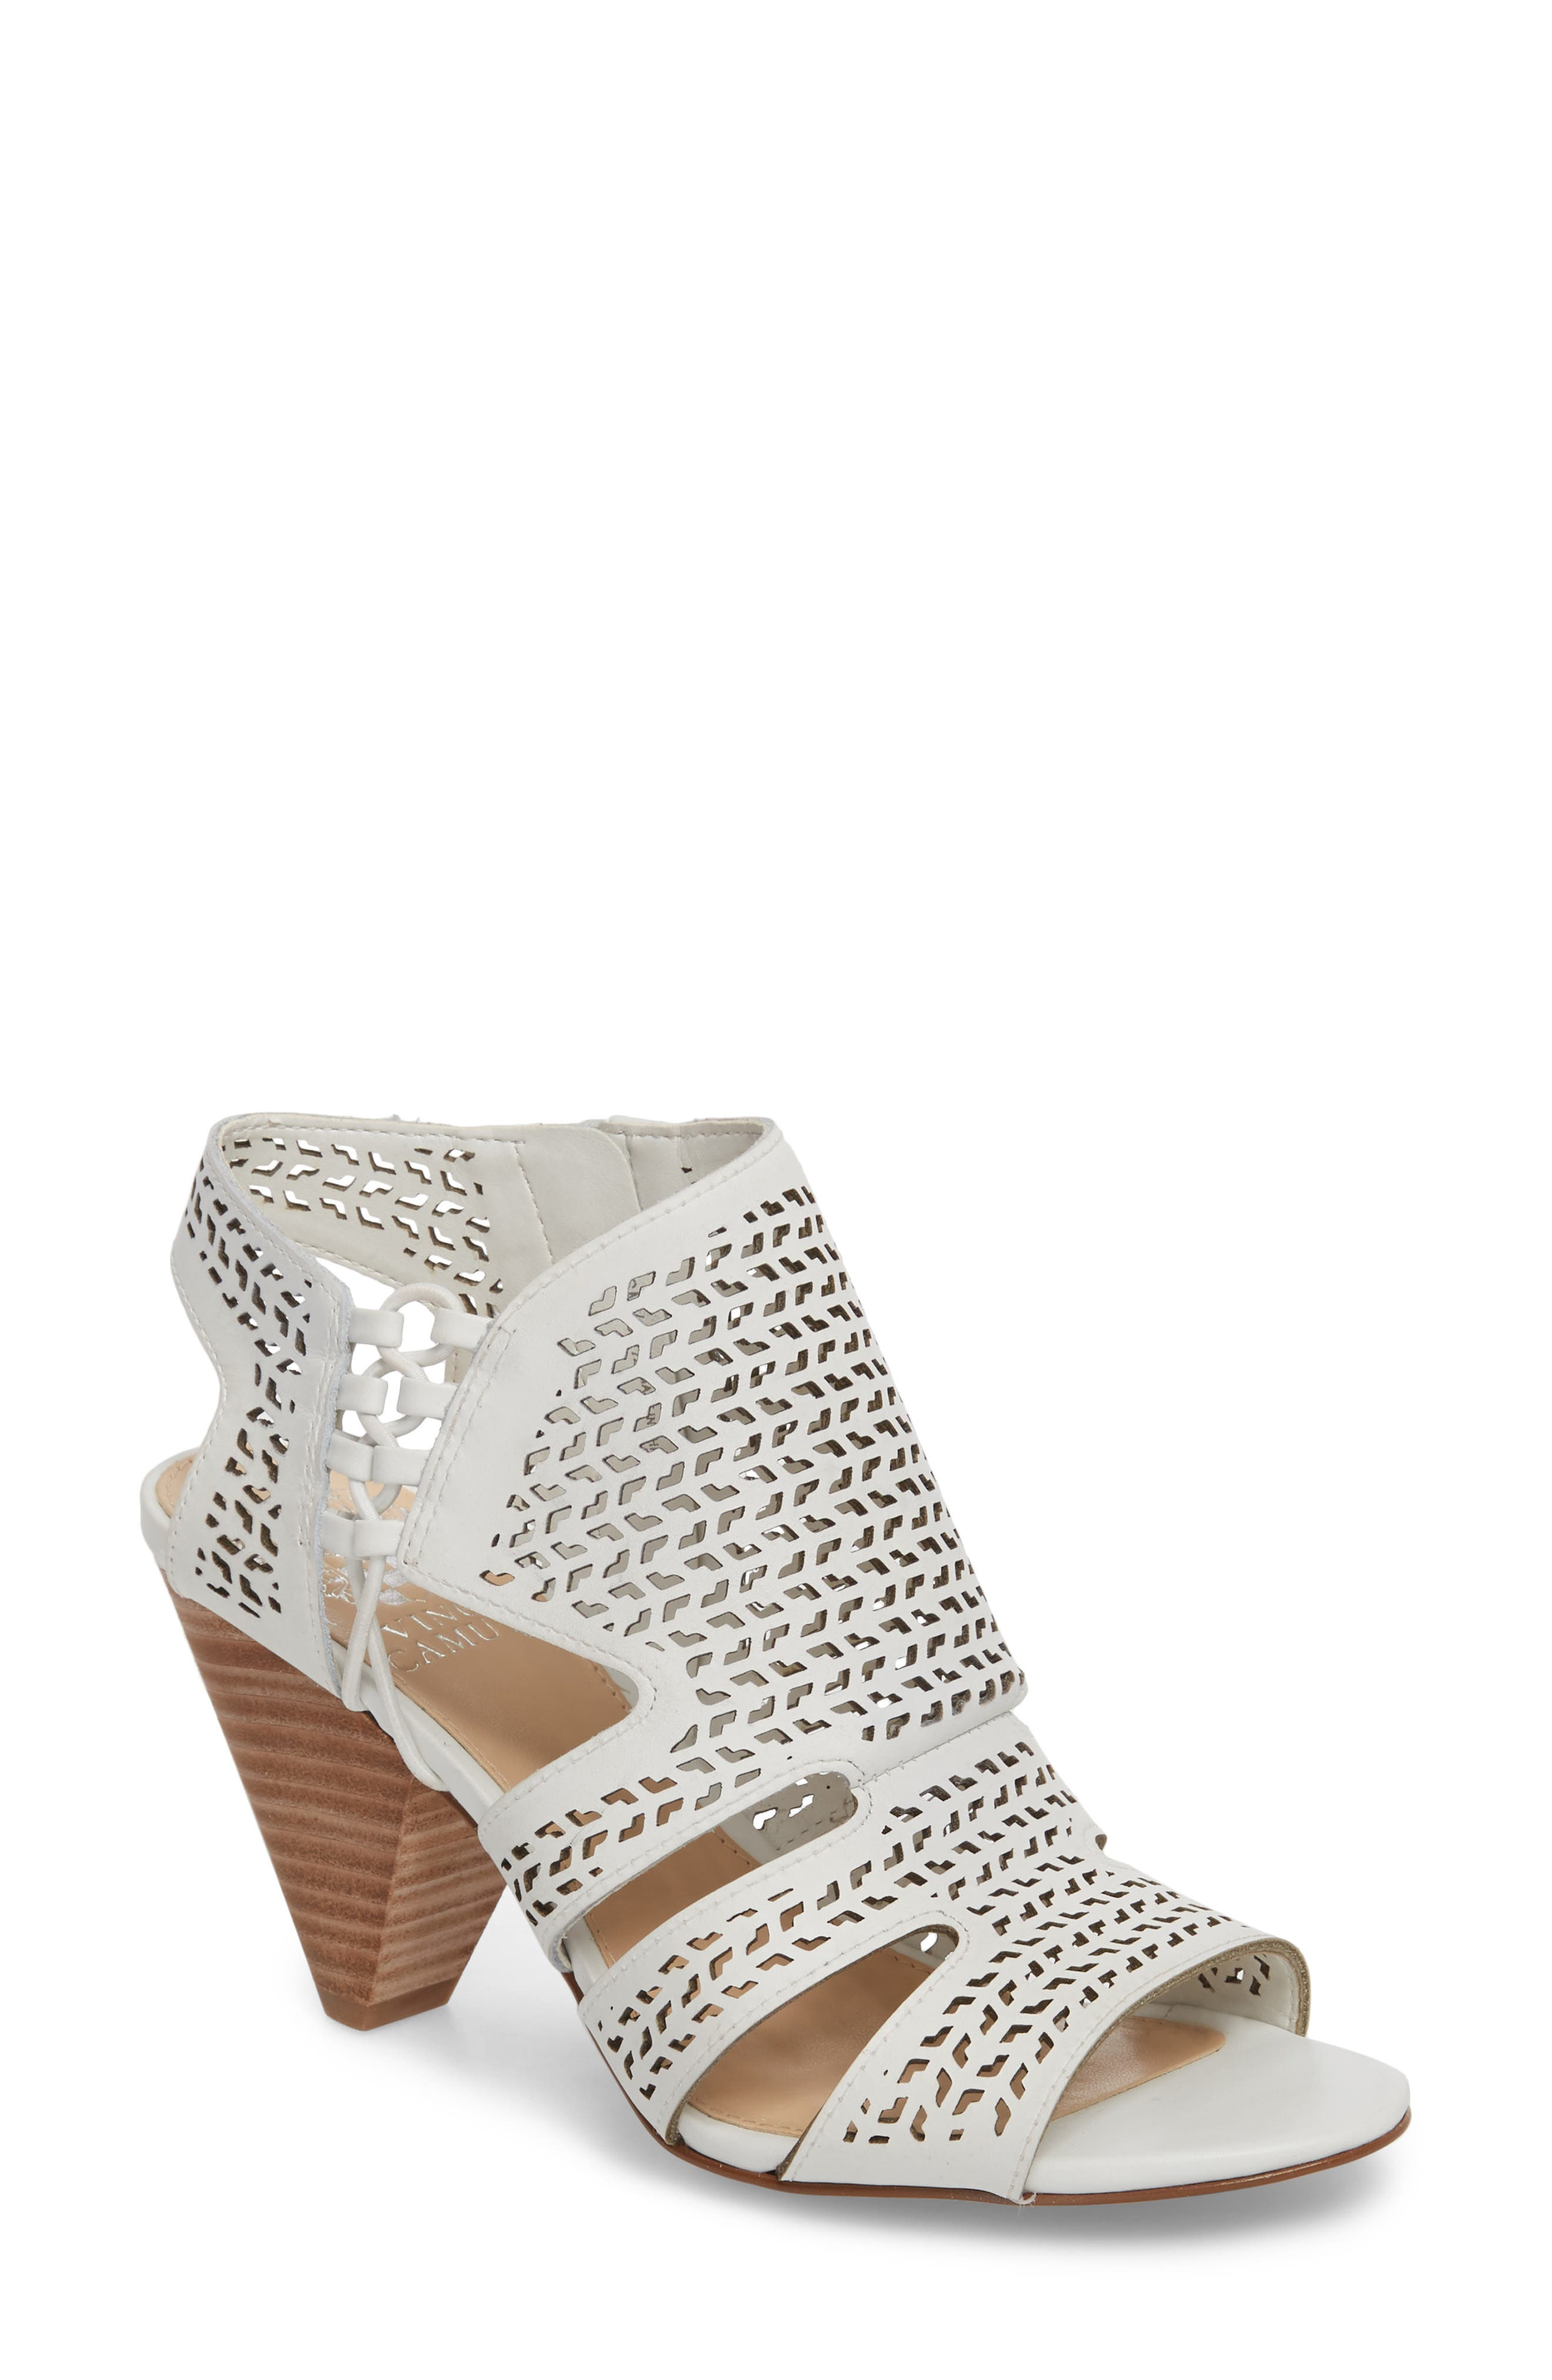 Vince Camuto Women's Esten Perforated Sandal X0a6I